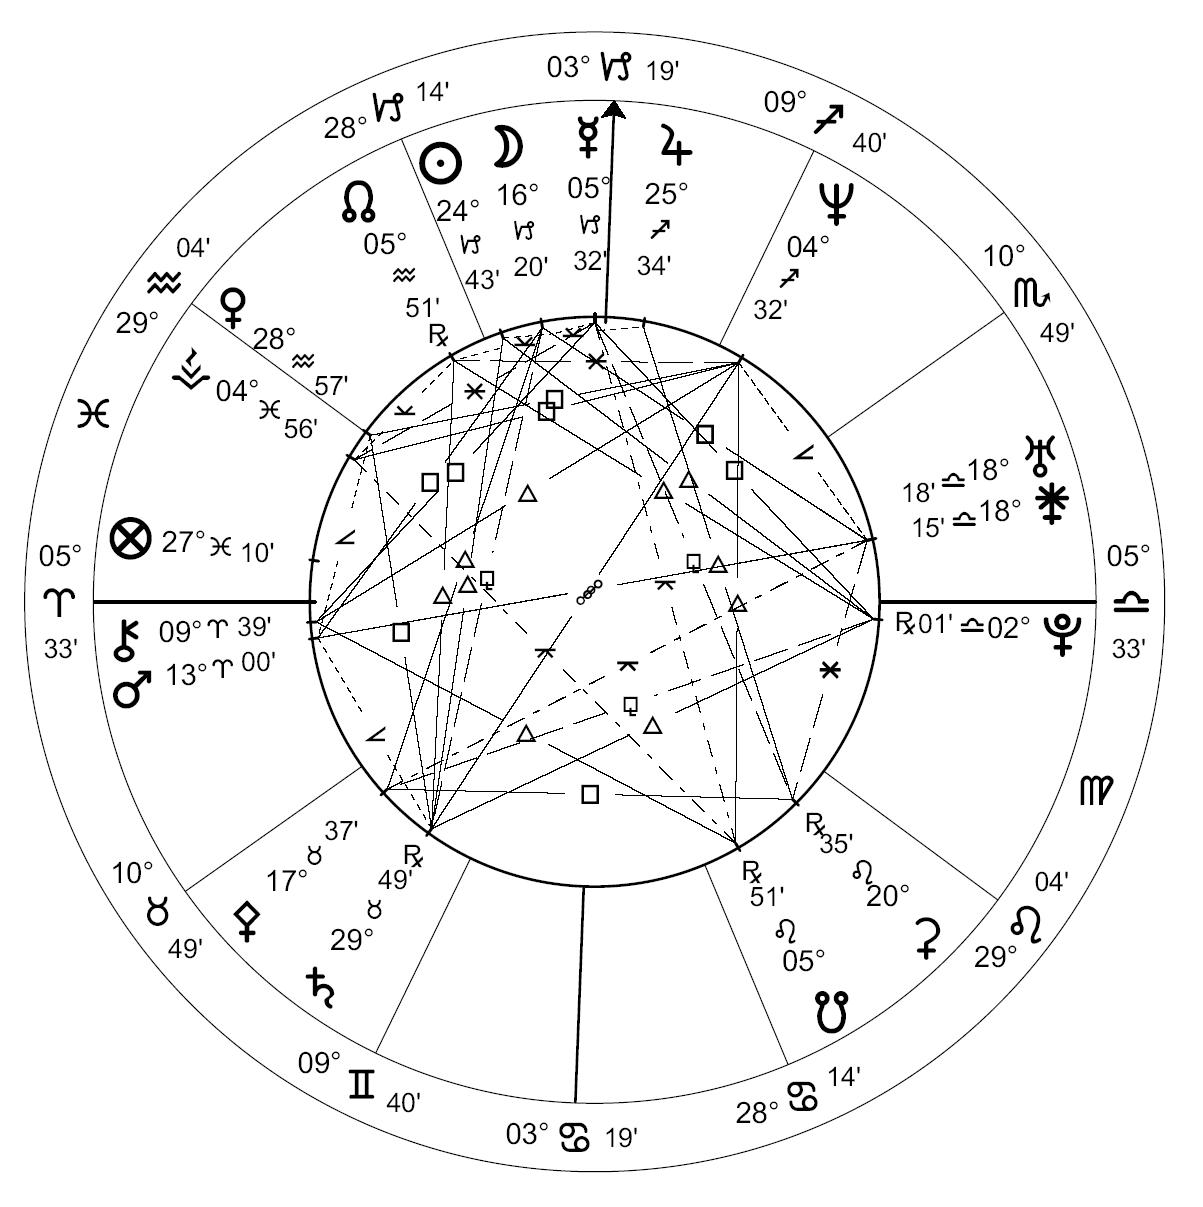 2013 horoscope by susan miller october 25 2013 on blogcil 1gm 21kdecan